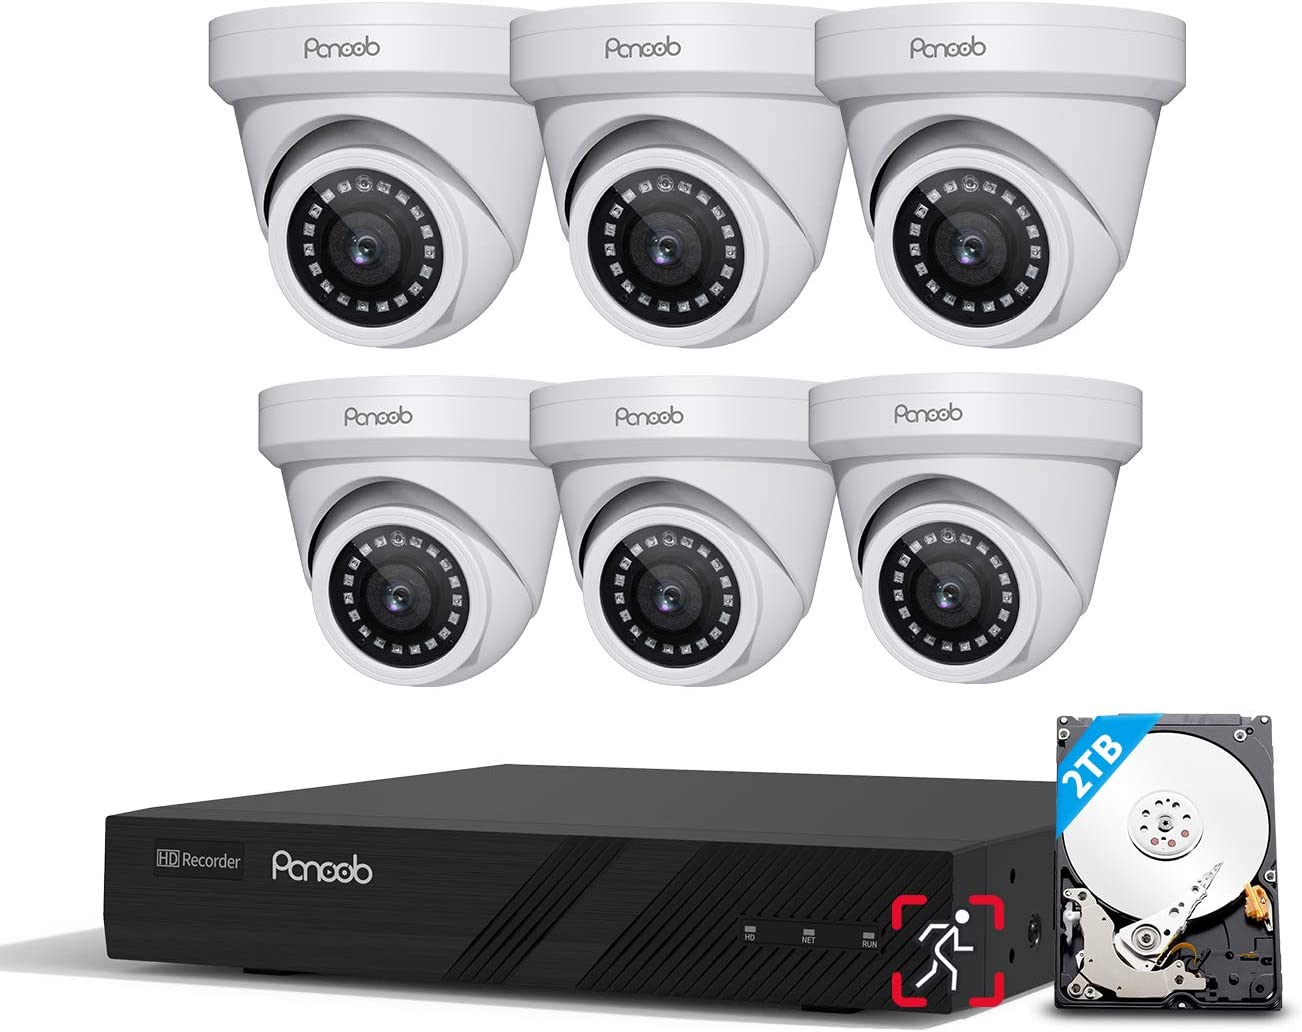 PANOOB 8CH 4K PoE Security Camera 8MP Genuine Free Shipping NVR We OFFer at cheap prices Systems 8-Channel